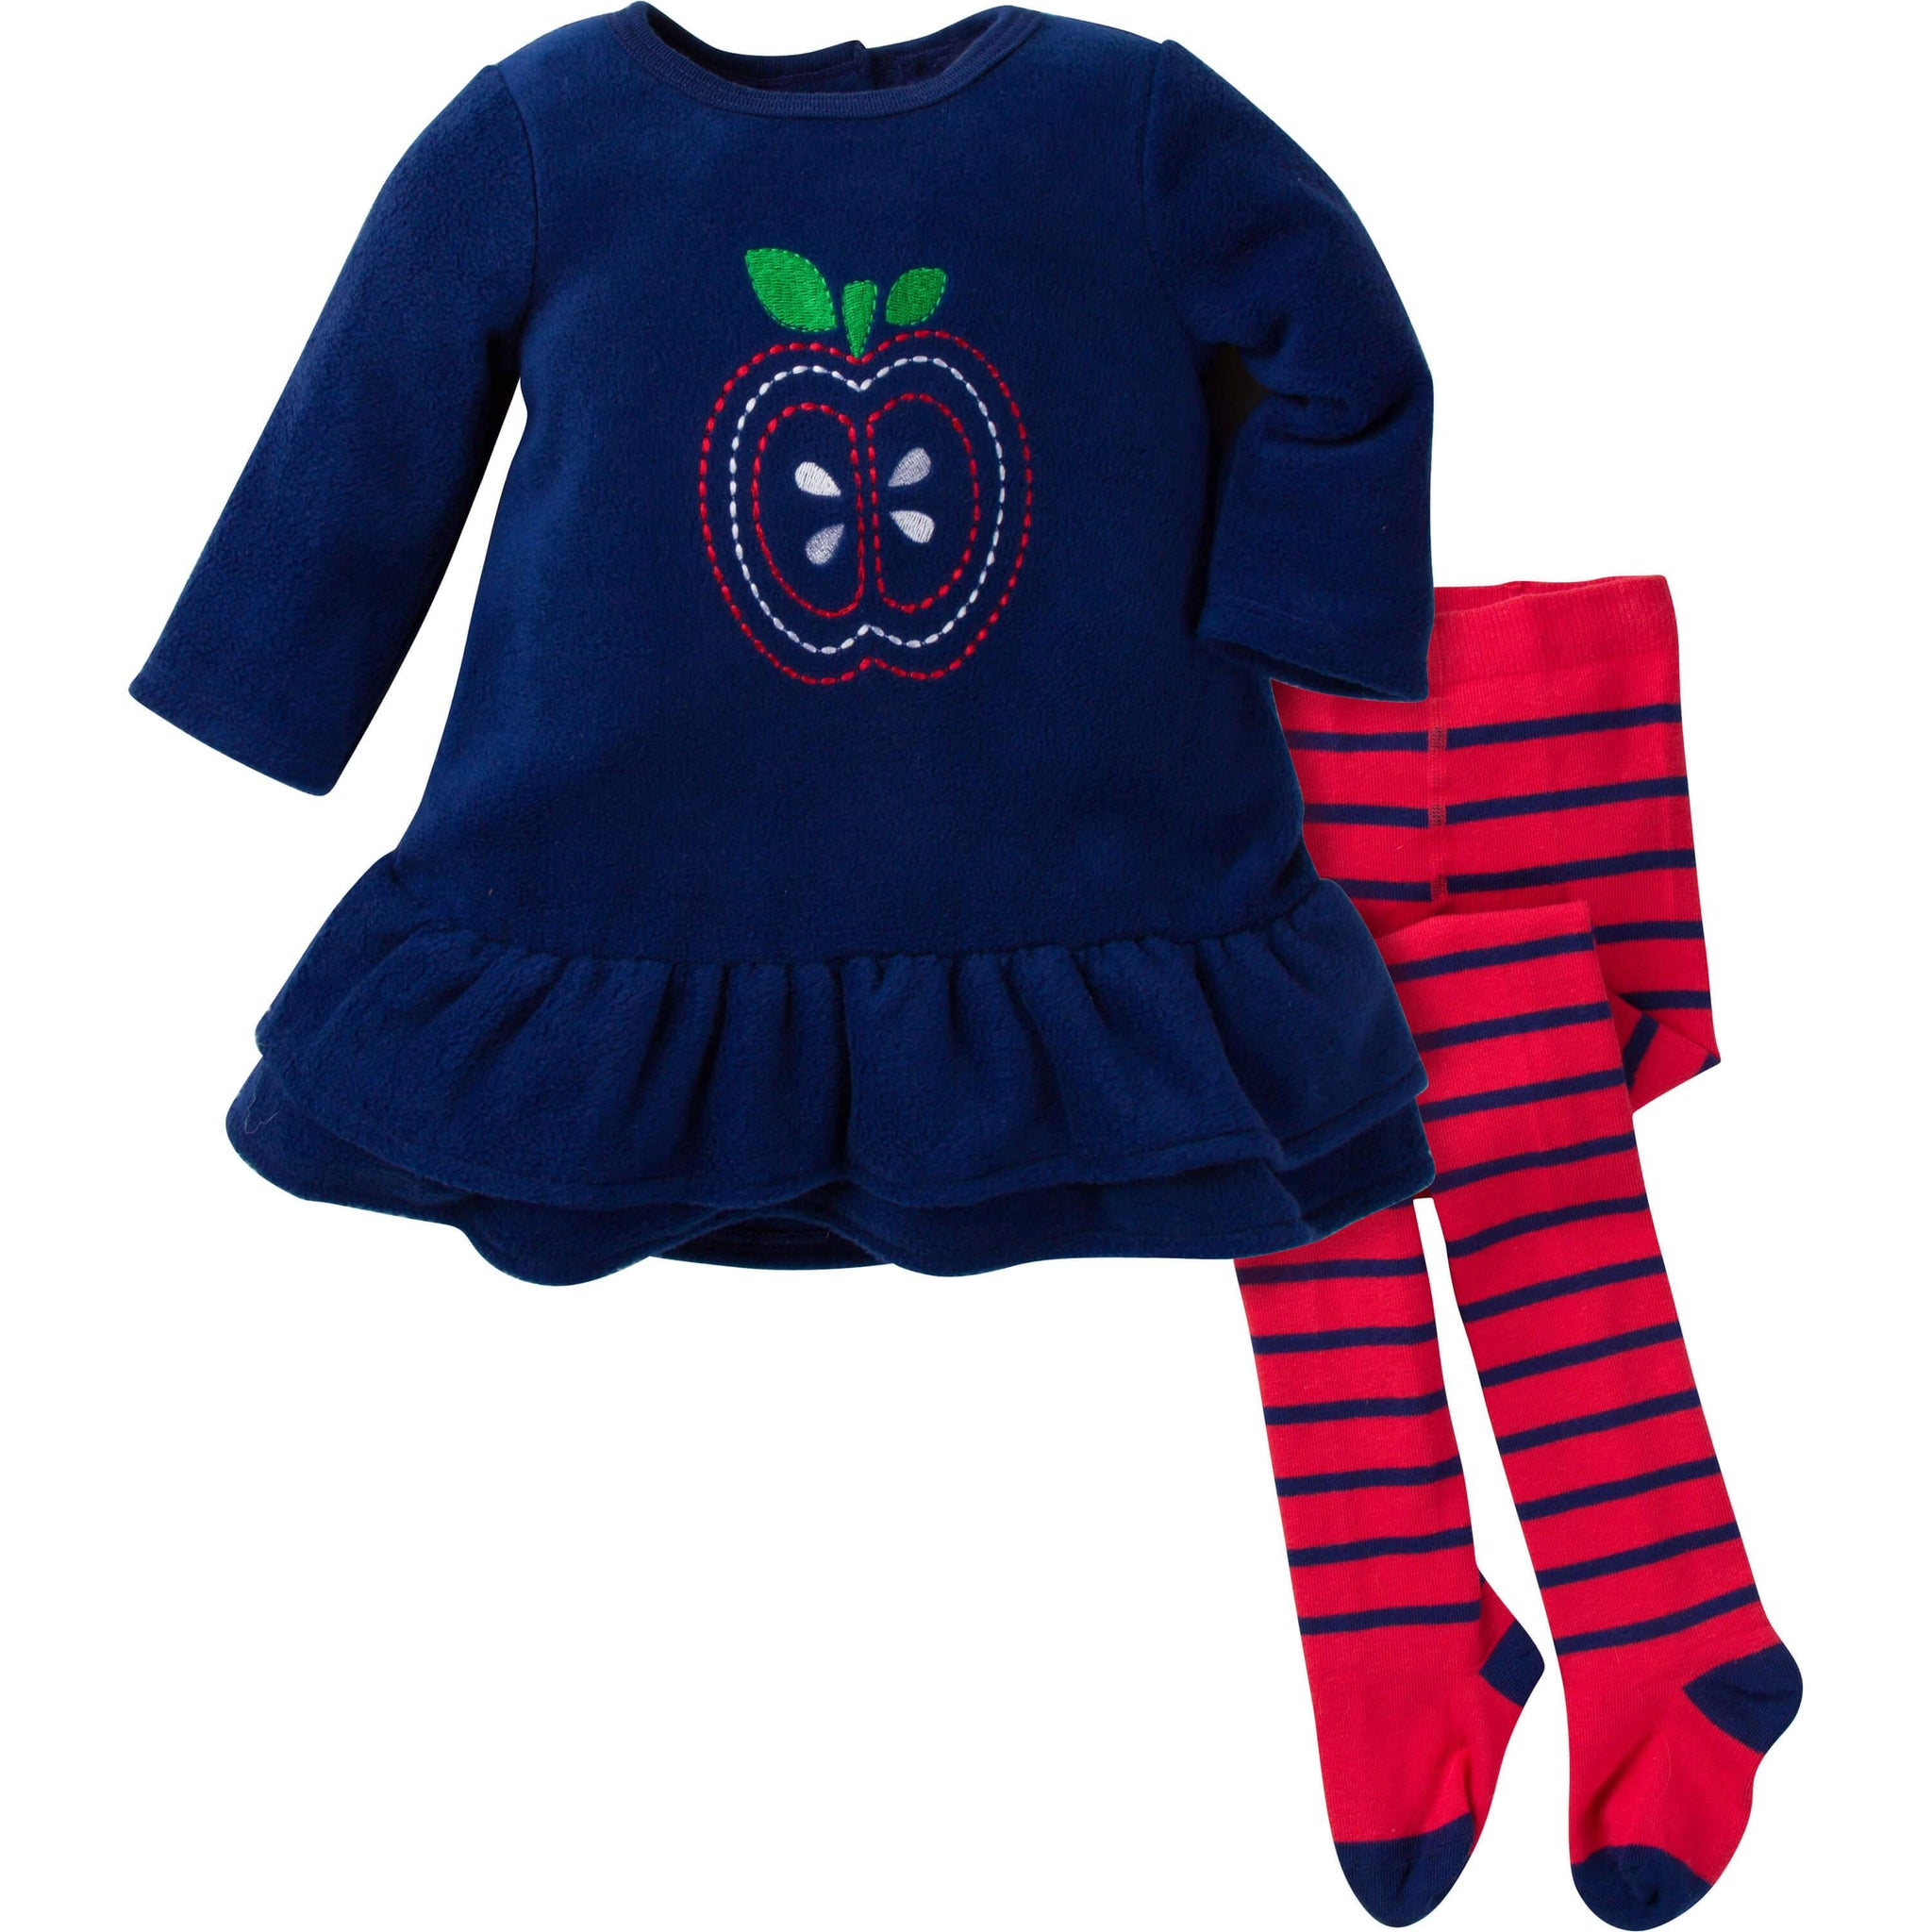 2-Piece Girls Essentials Fleece Dress with Tights Set - Apples